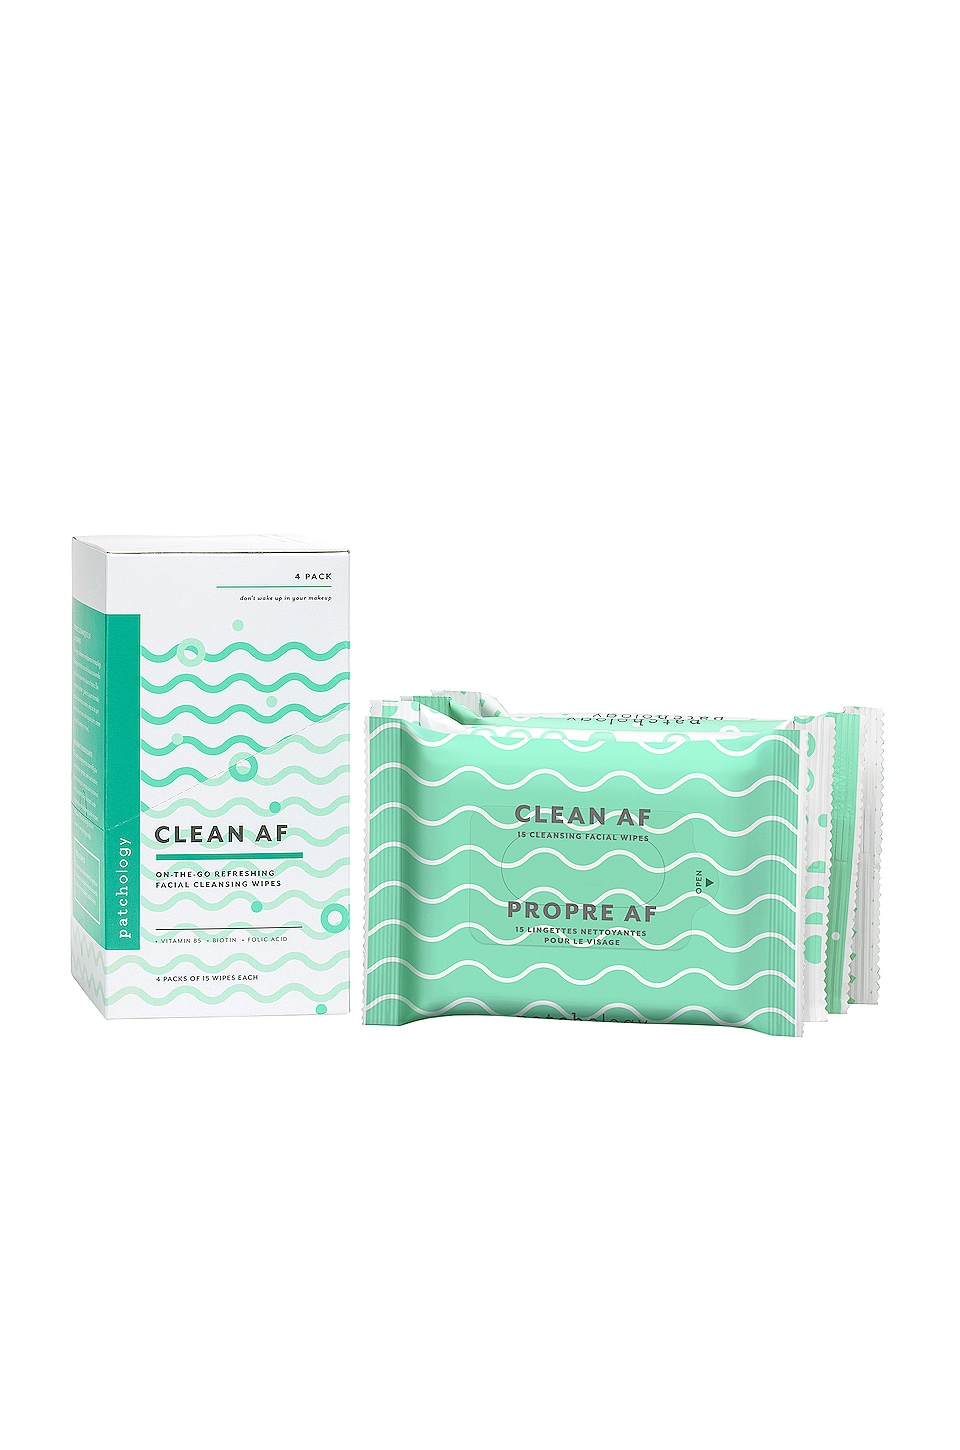 Clean AF Facial Cleansing Wipes 4 Pack